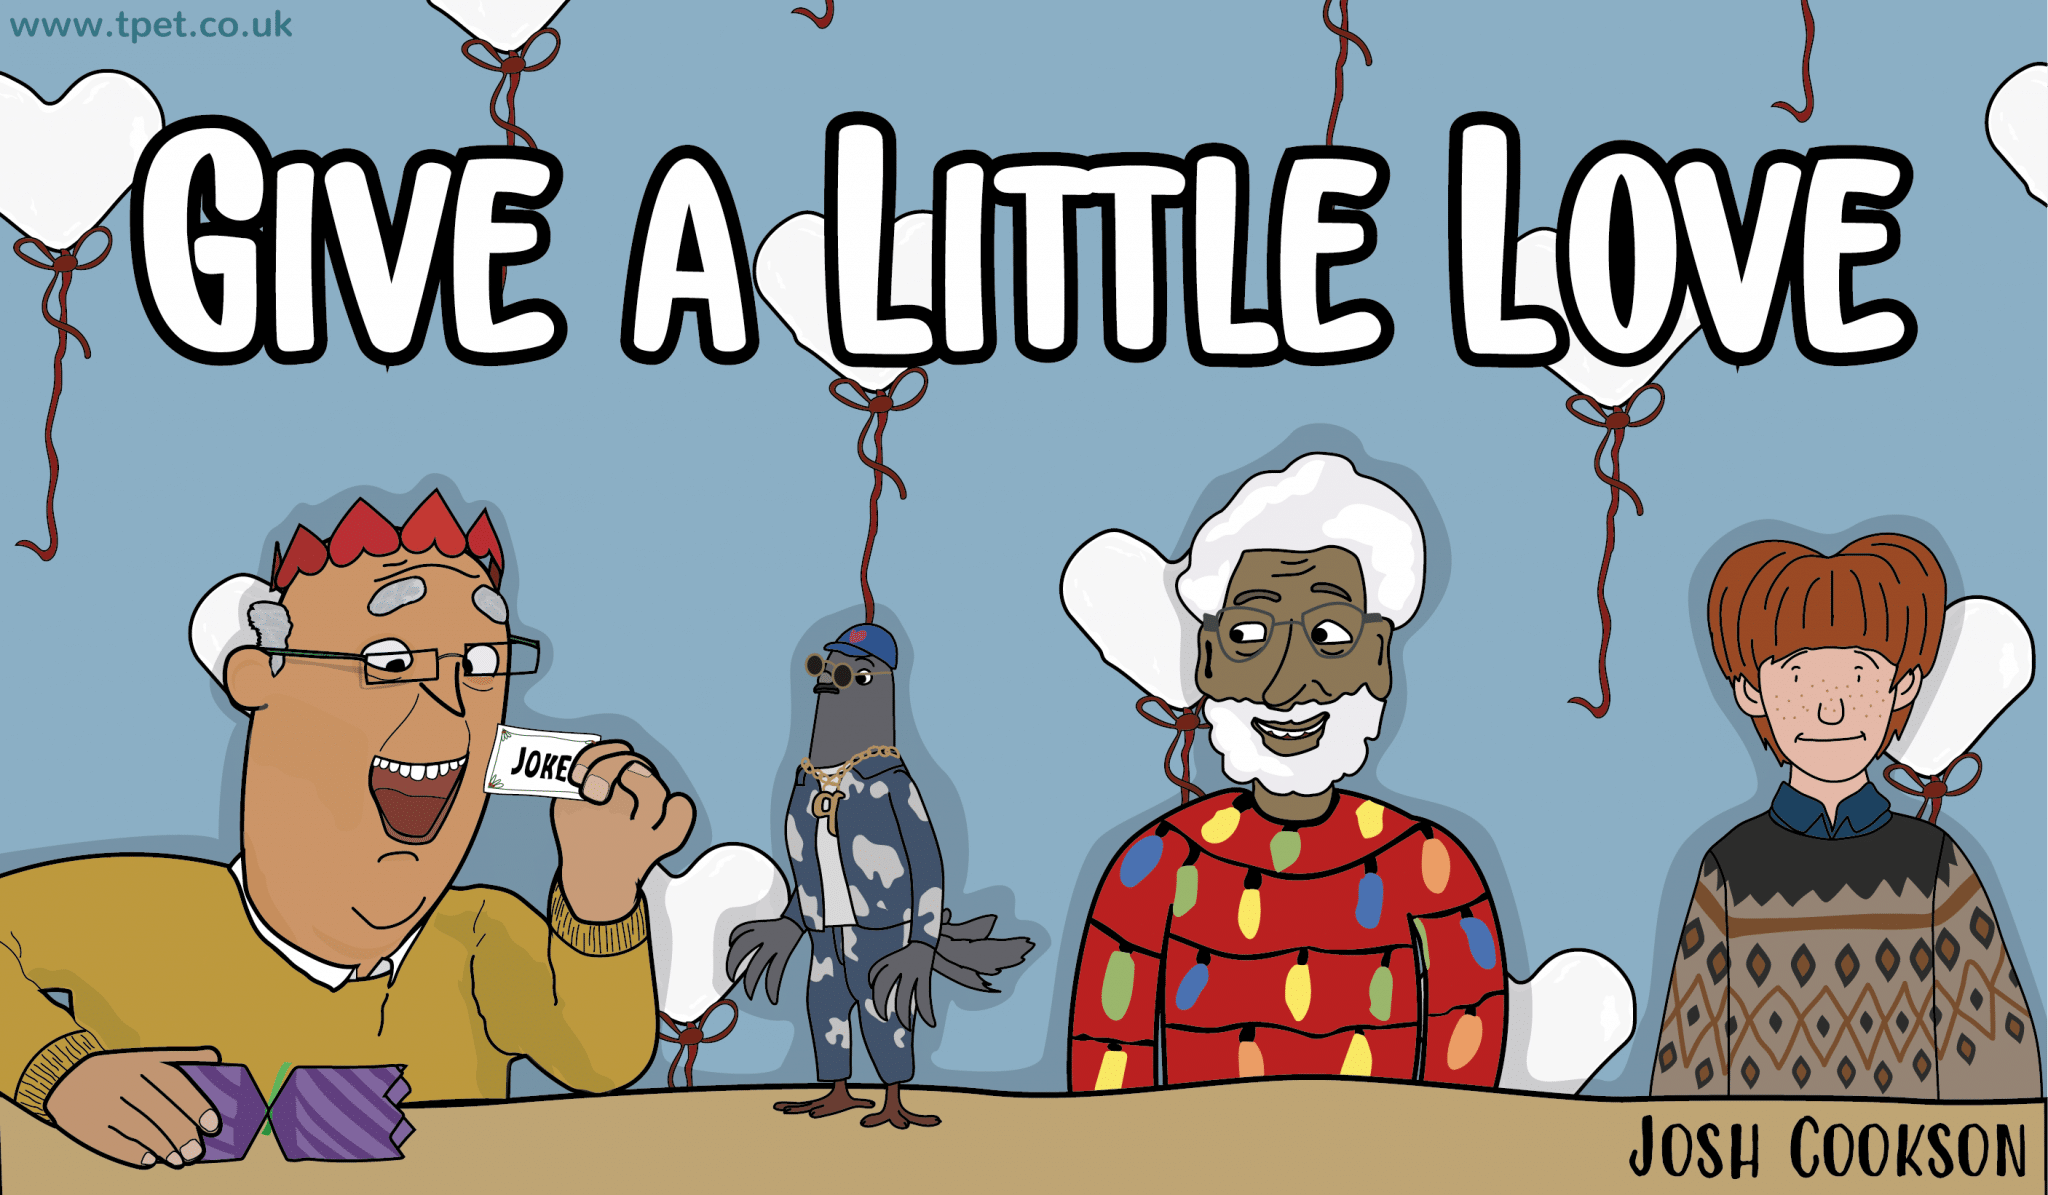 'Give a Little Love' – The John Lewis Christmas Advert – Classroom Resources